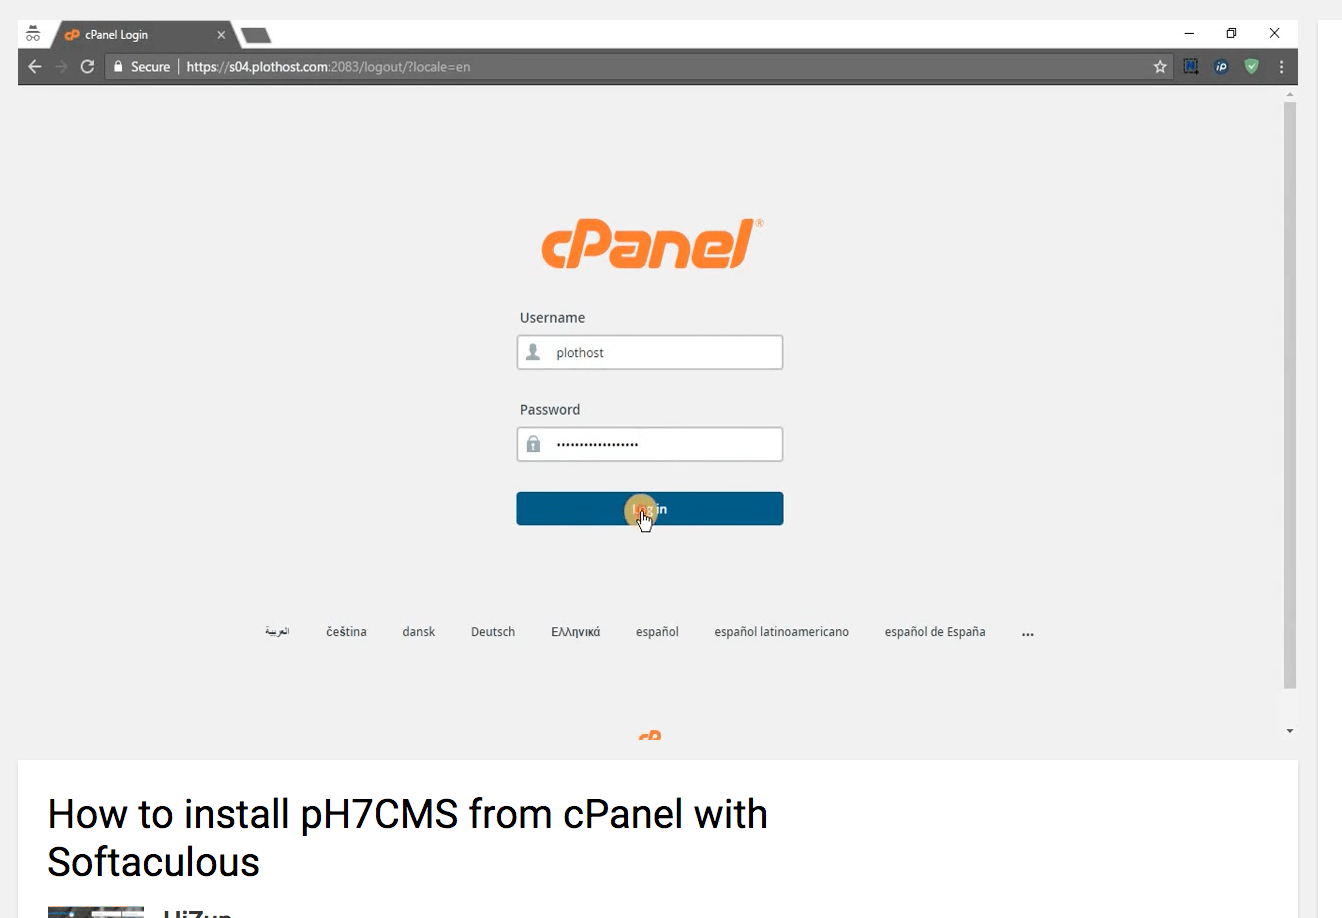 How to install pH7CMS from cPanel with Softaculous